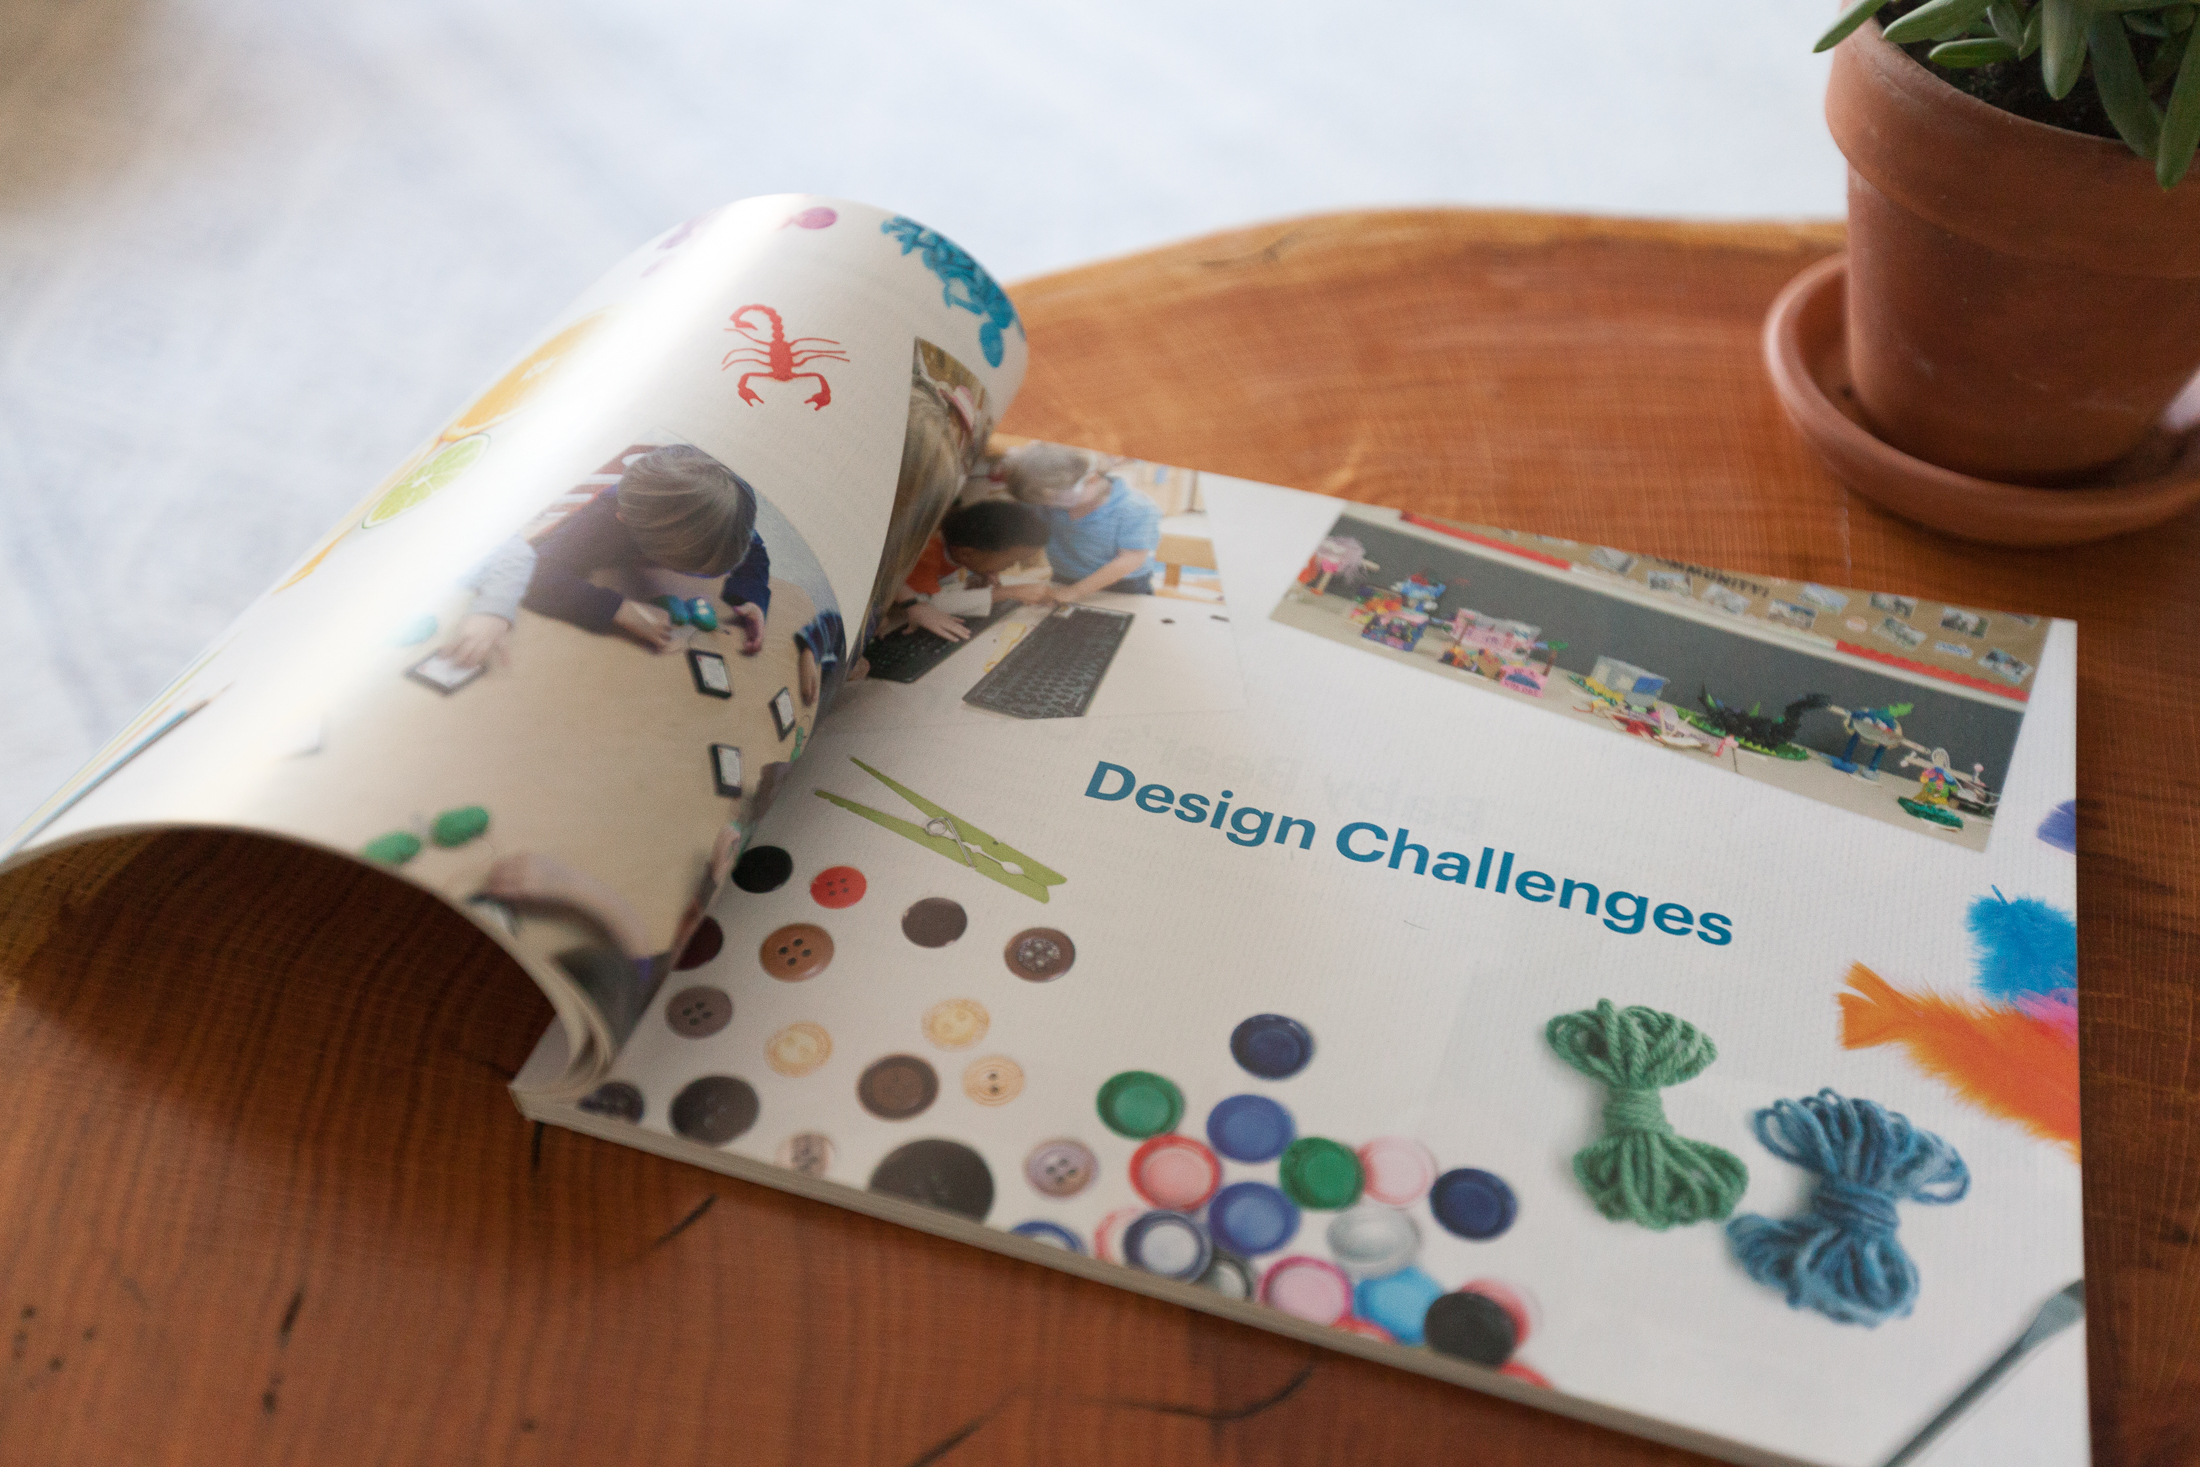 Making and Tinkering With STEM: Solving Design Challenges With Young Children